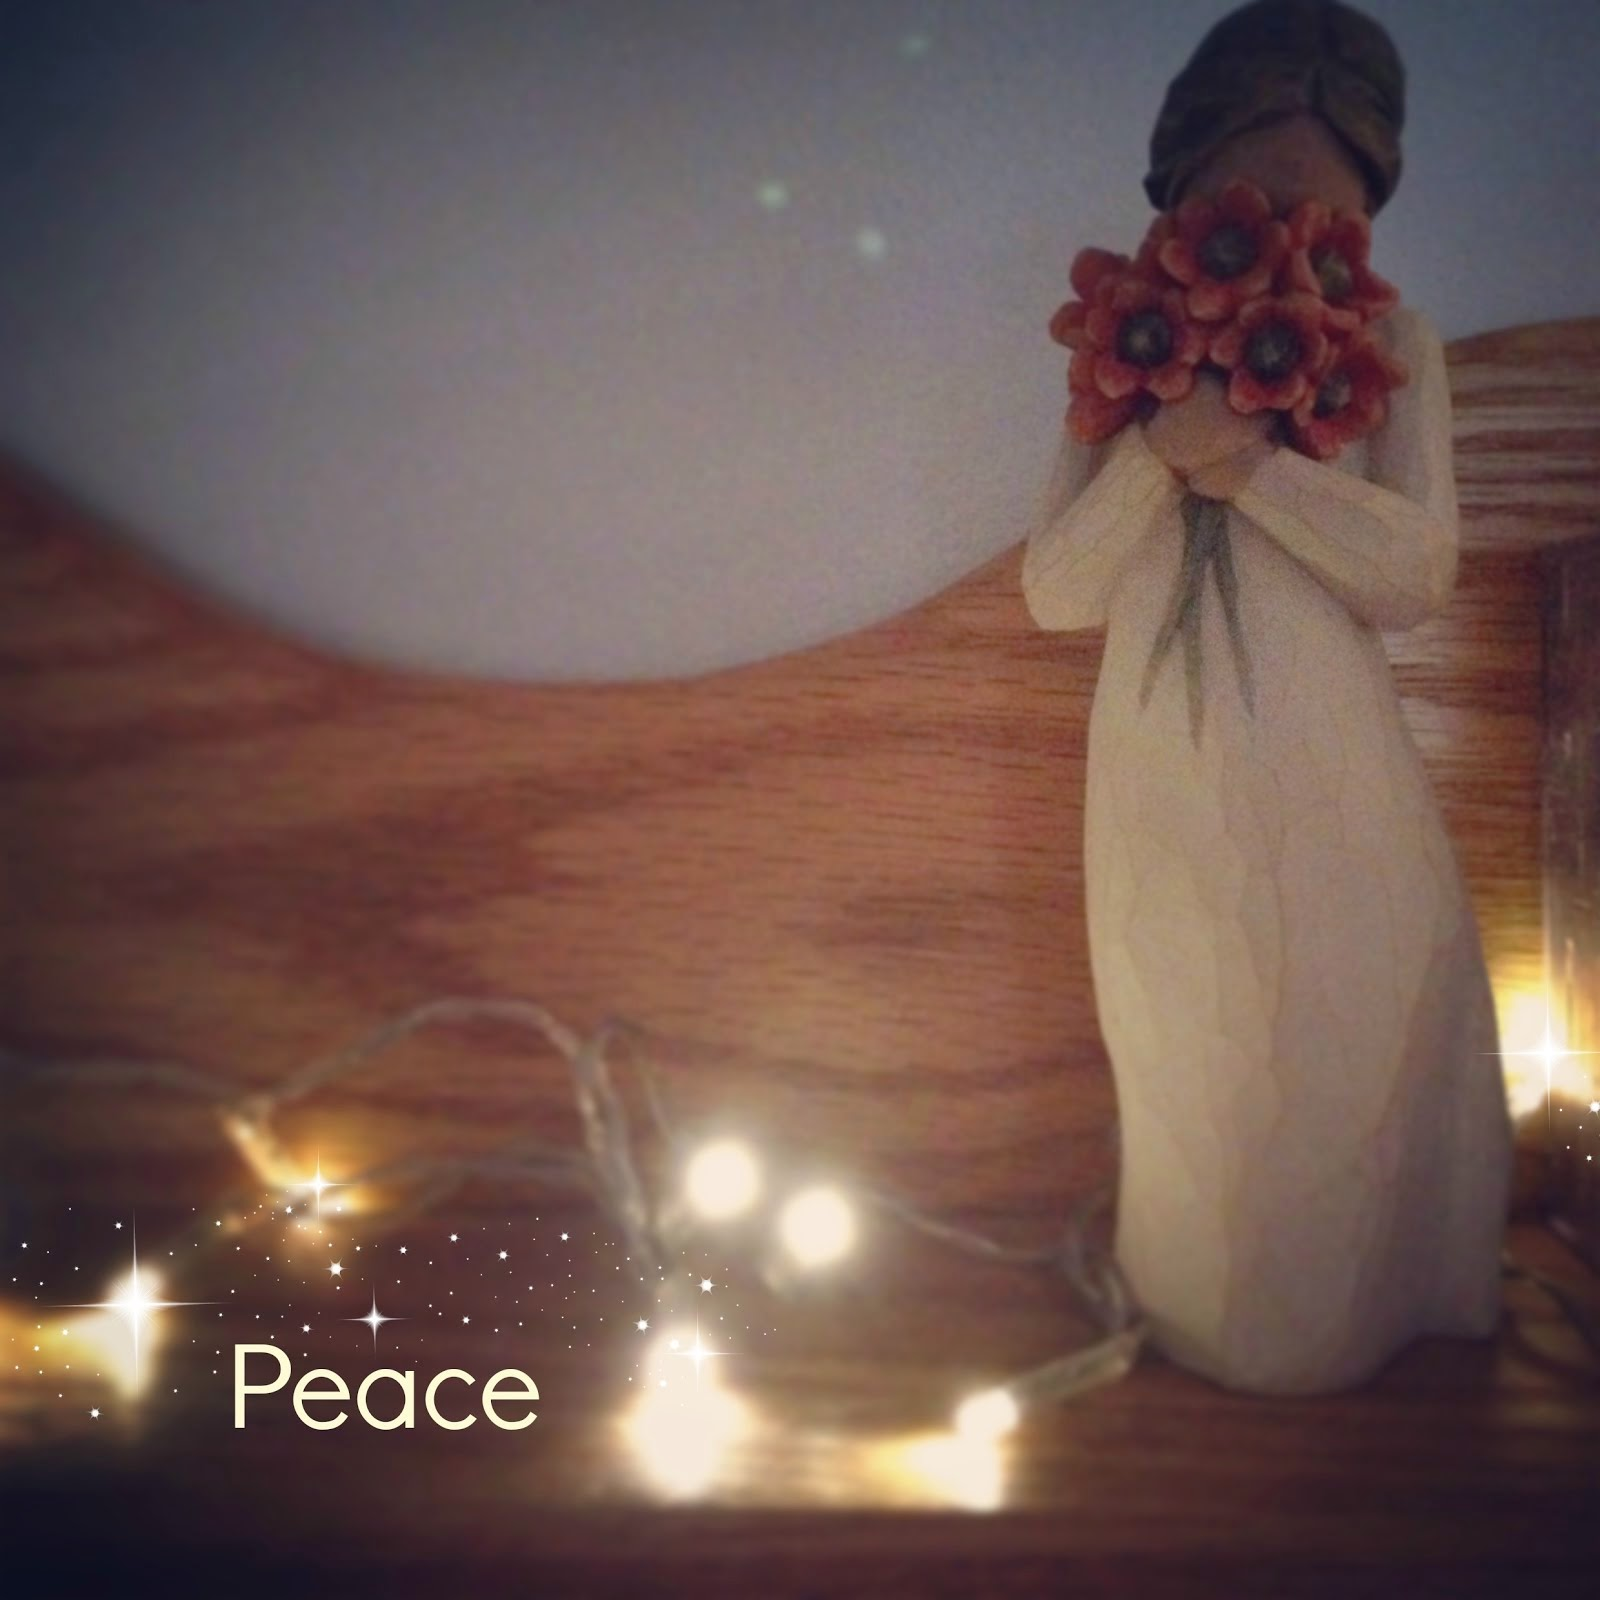 Peace is my word for 2015